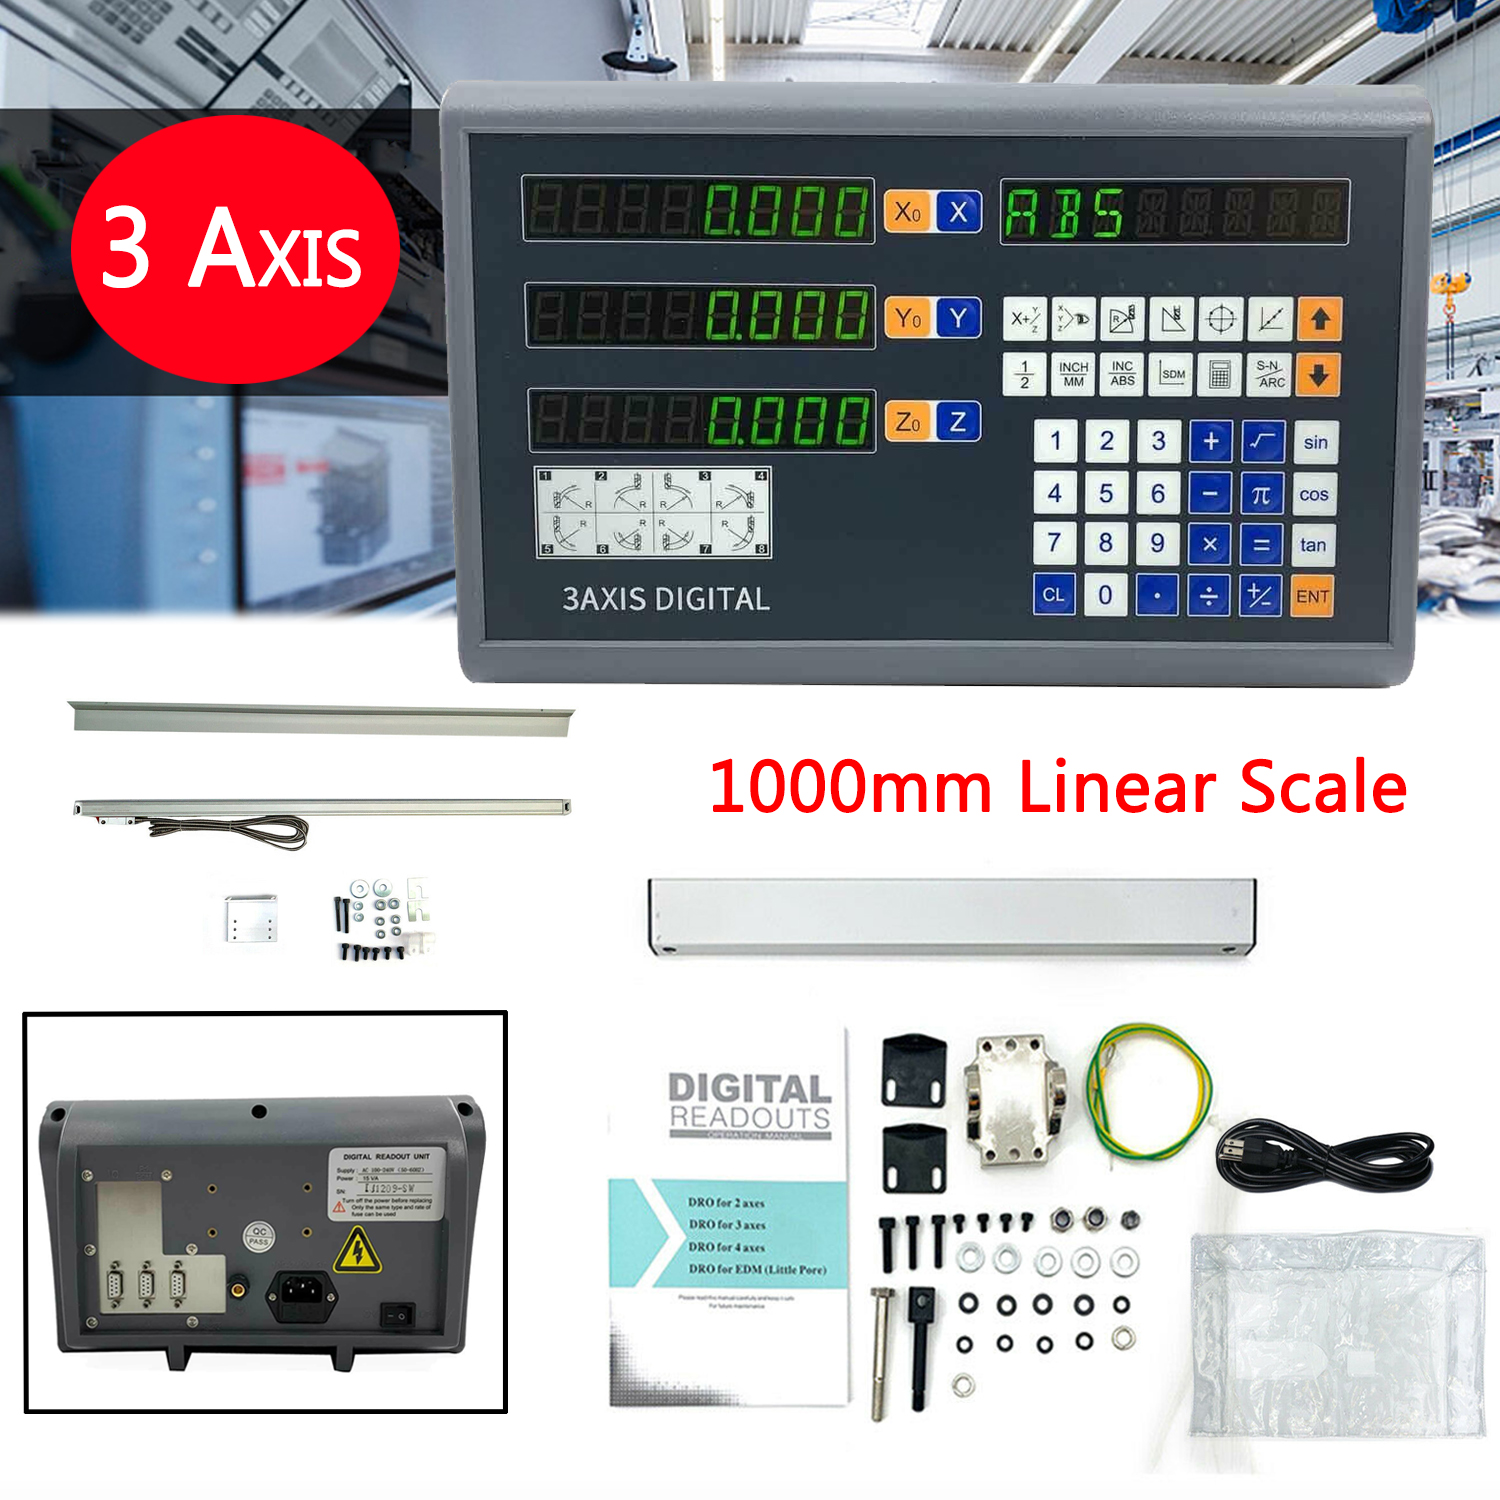 3 Axis Digital Readout Display Lathe Machine Replace Linear Encoder Accuracy